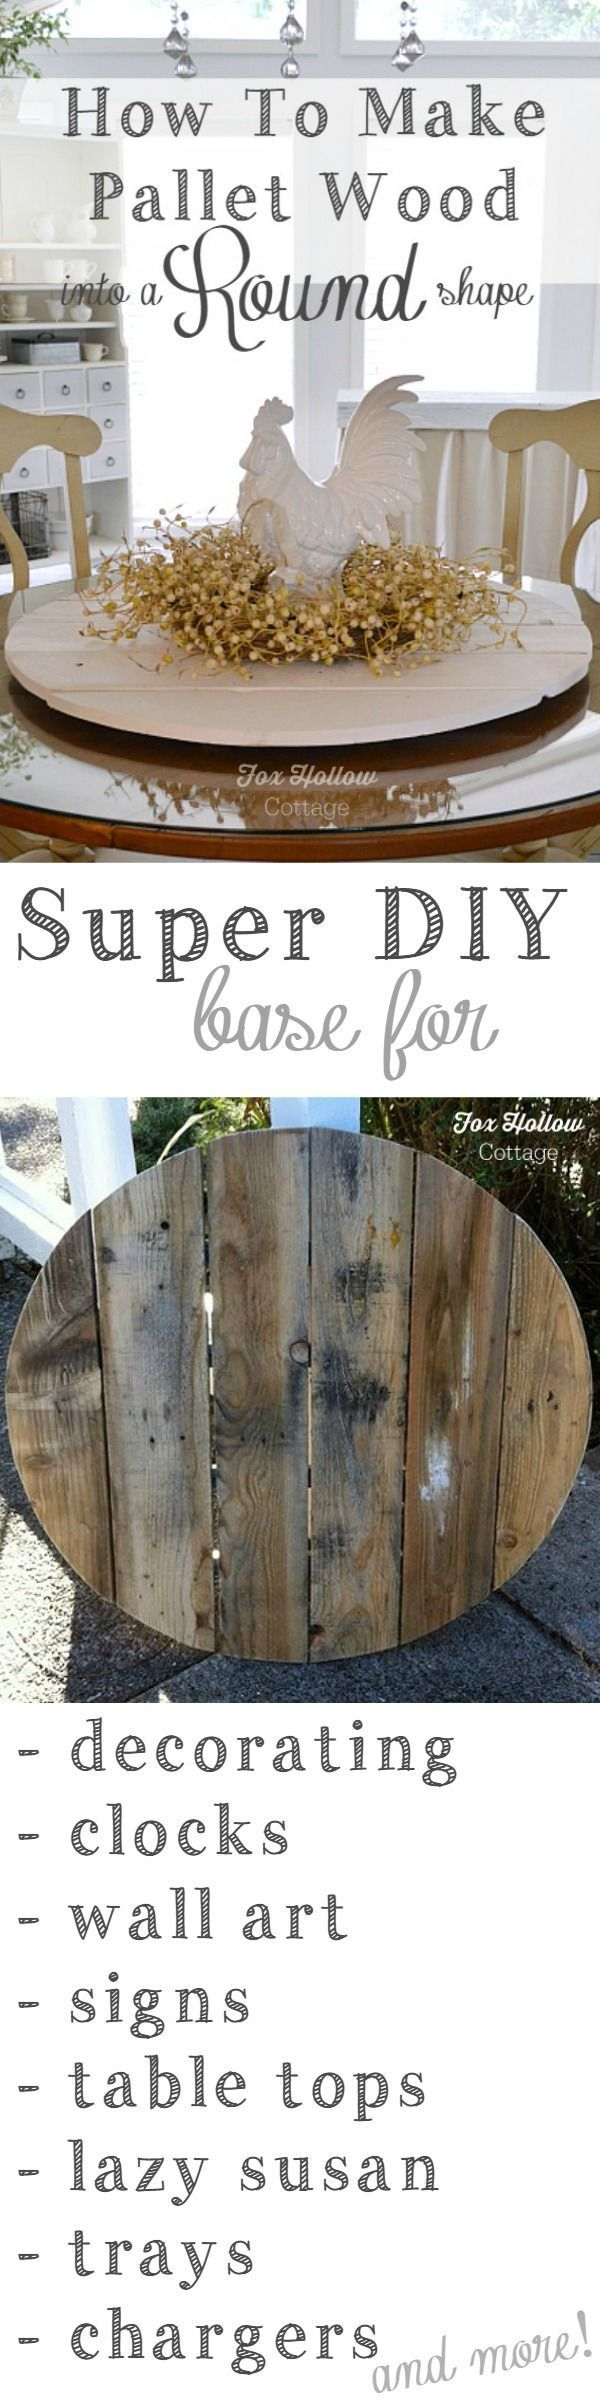 How-to Make Pallet Wood into a Round Circle Shape. Simple beginner friendly DIY tutorial at foxhollowcottage.com